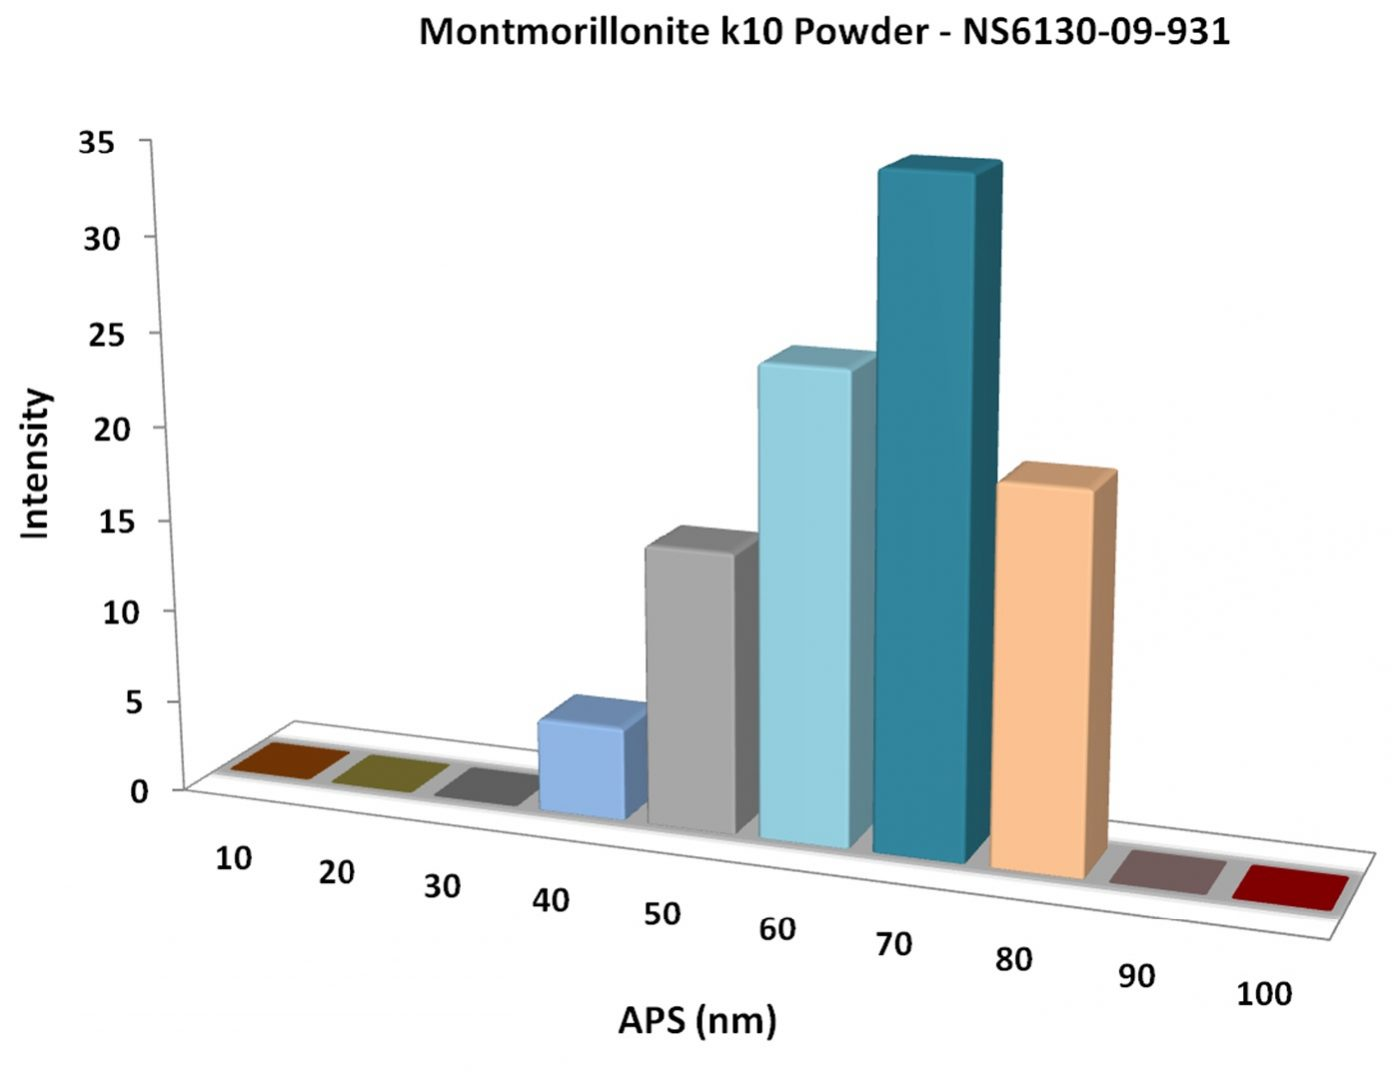 Particles Size Analysis - Montmorillonite k10 Powder